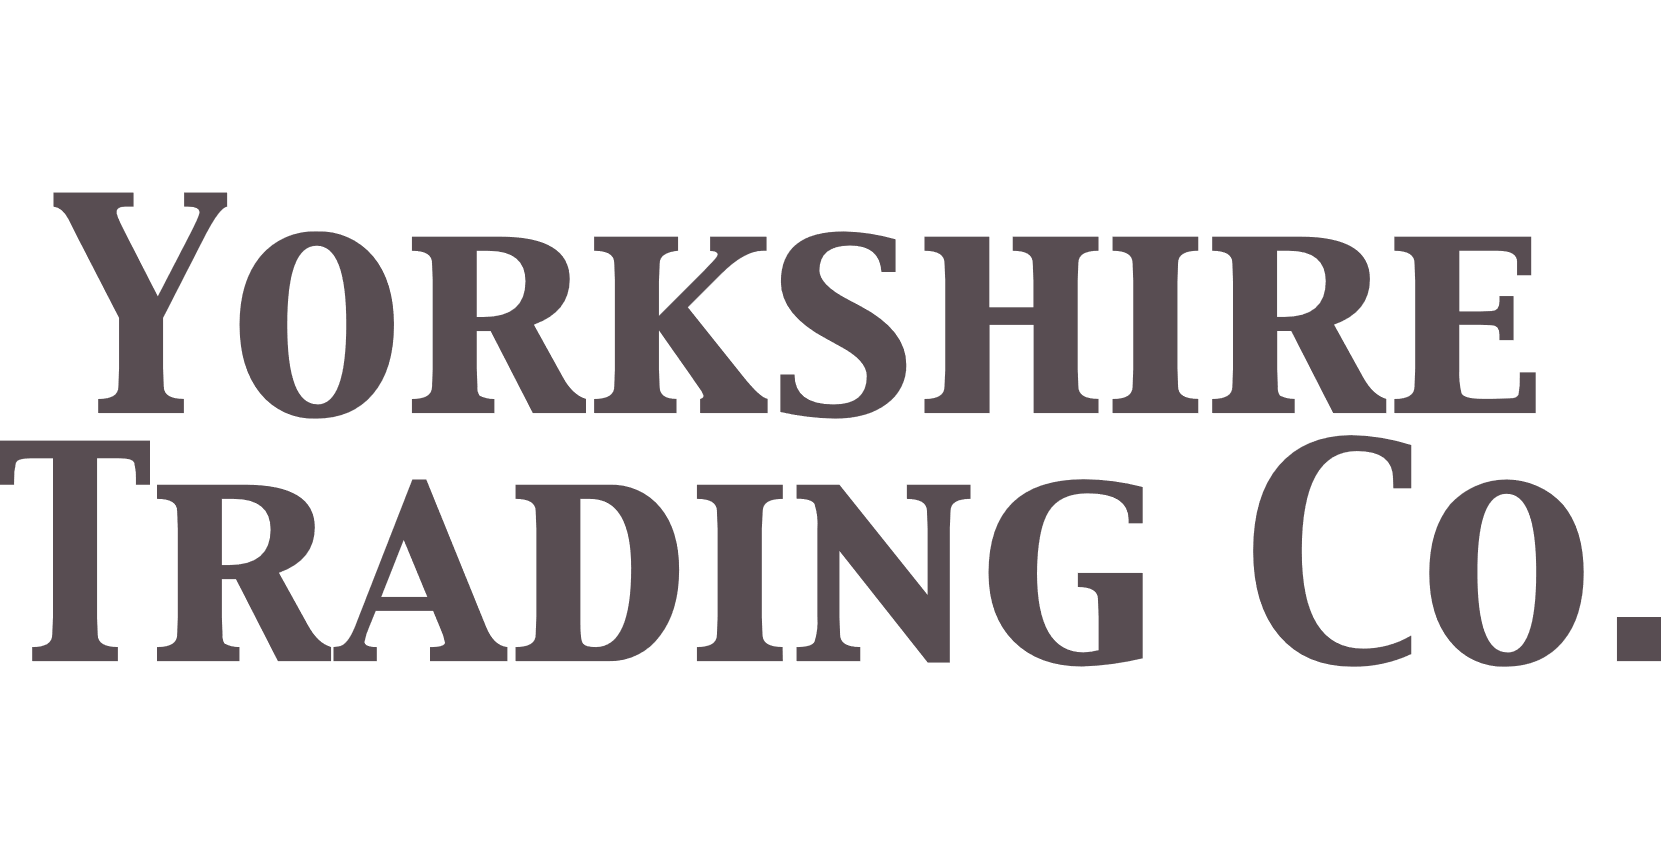 Yorkshire Trading